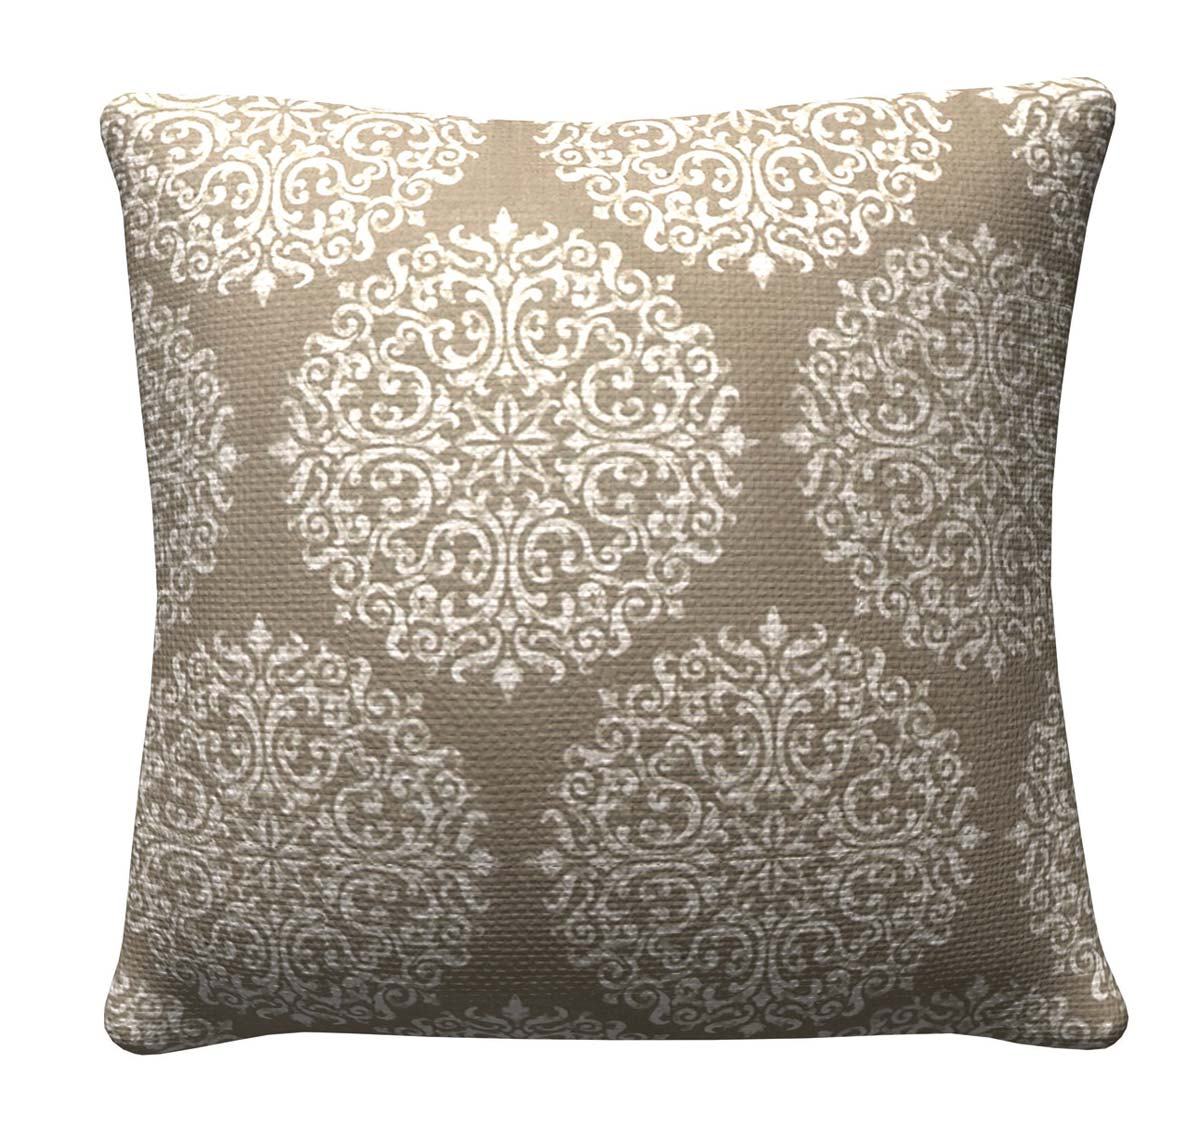 905315 Taupe Medallion Pillow